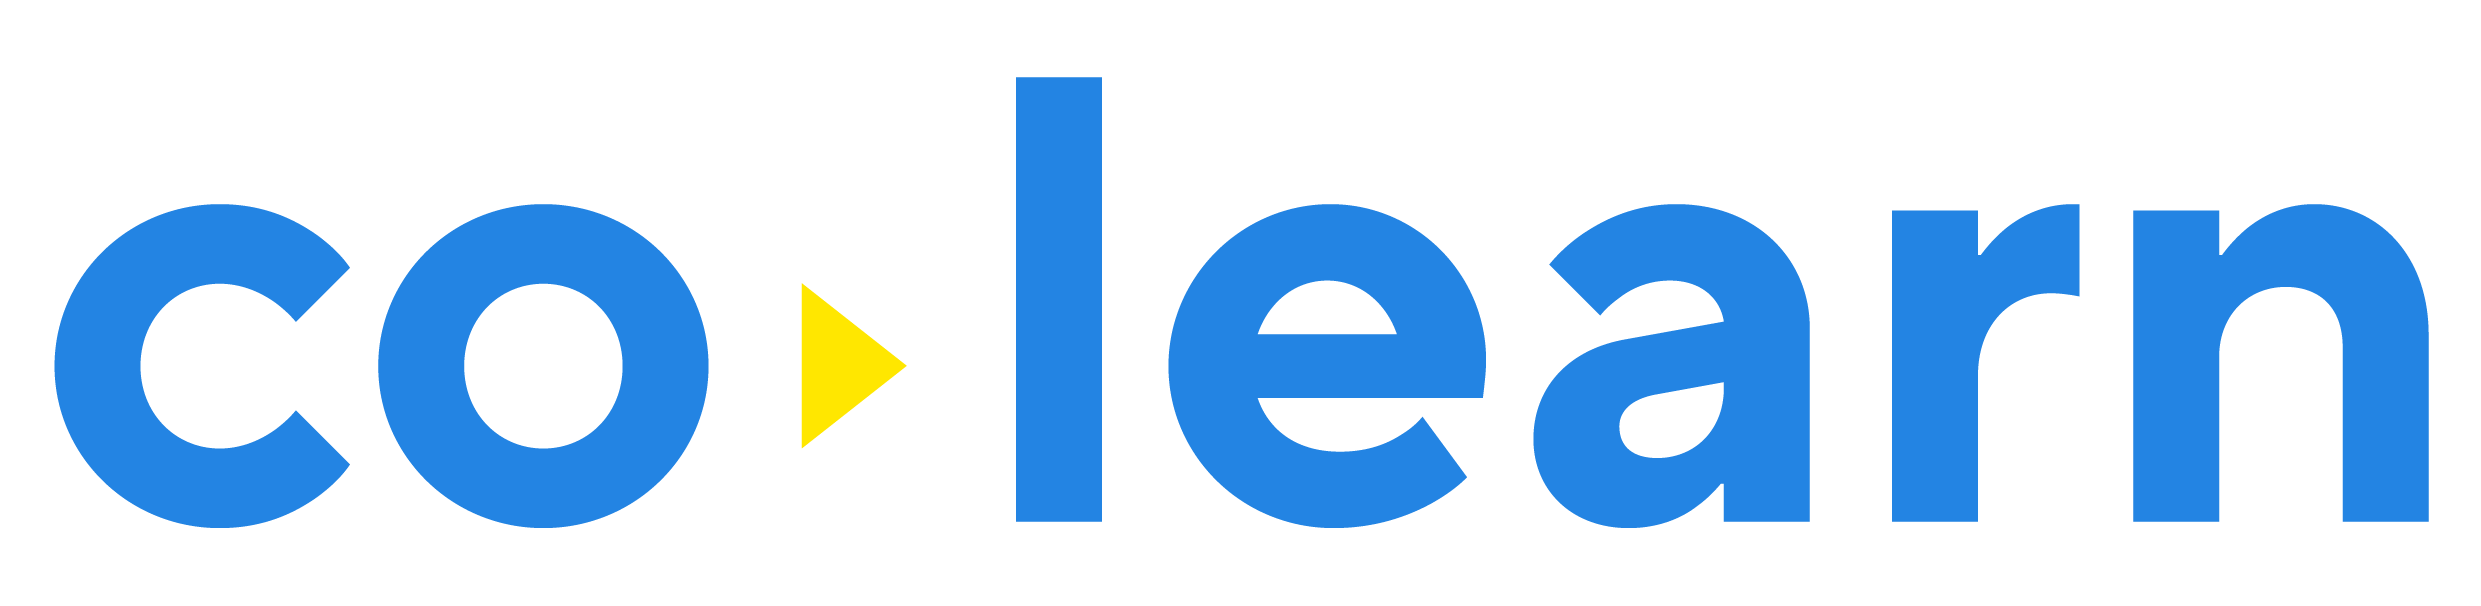 Fastest growing EdTech company in Southeast Asia logo